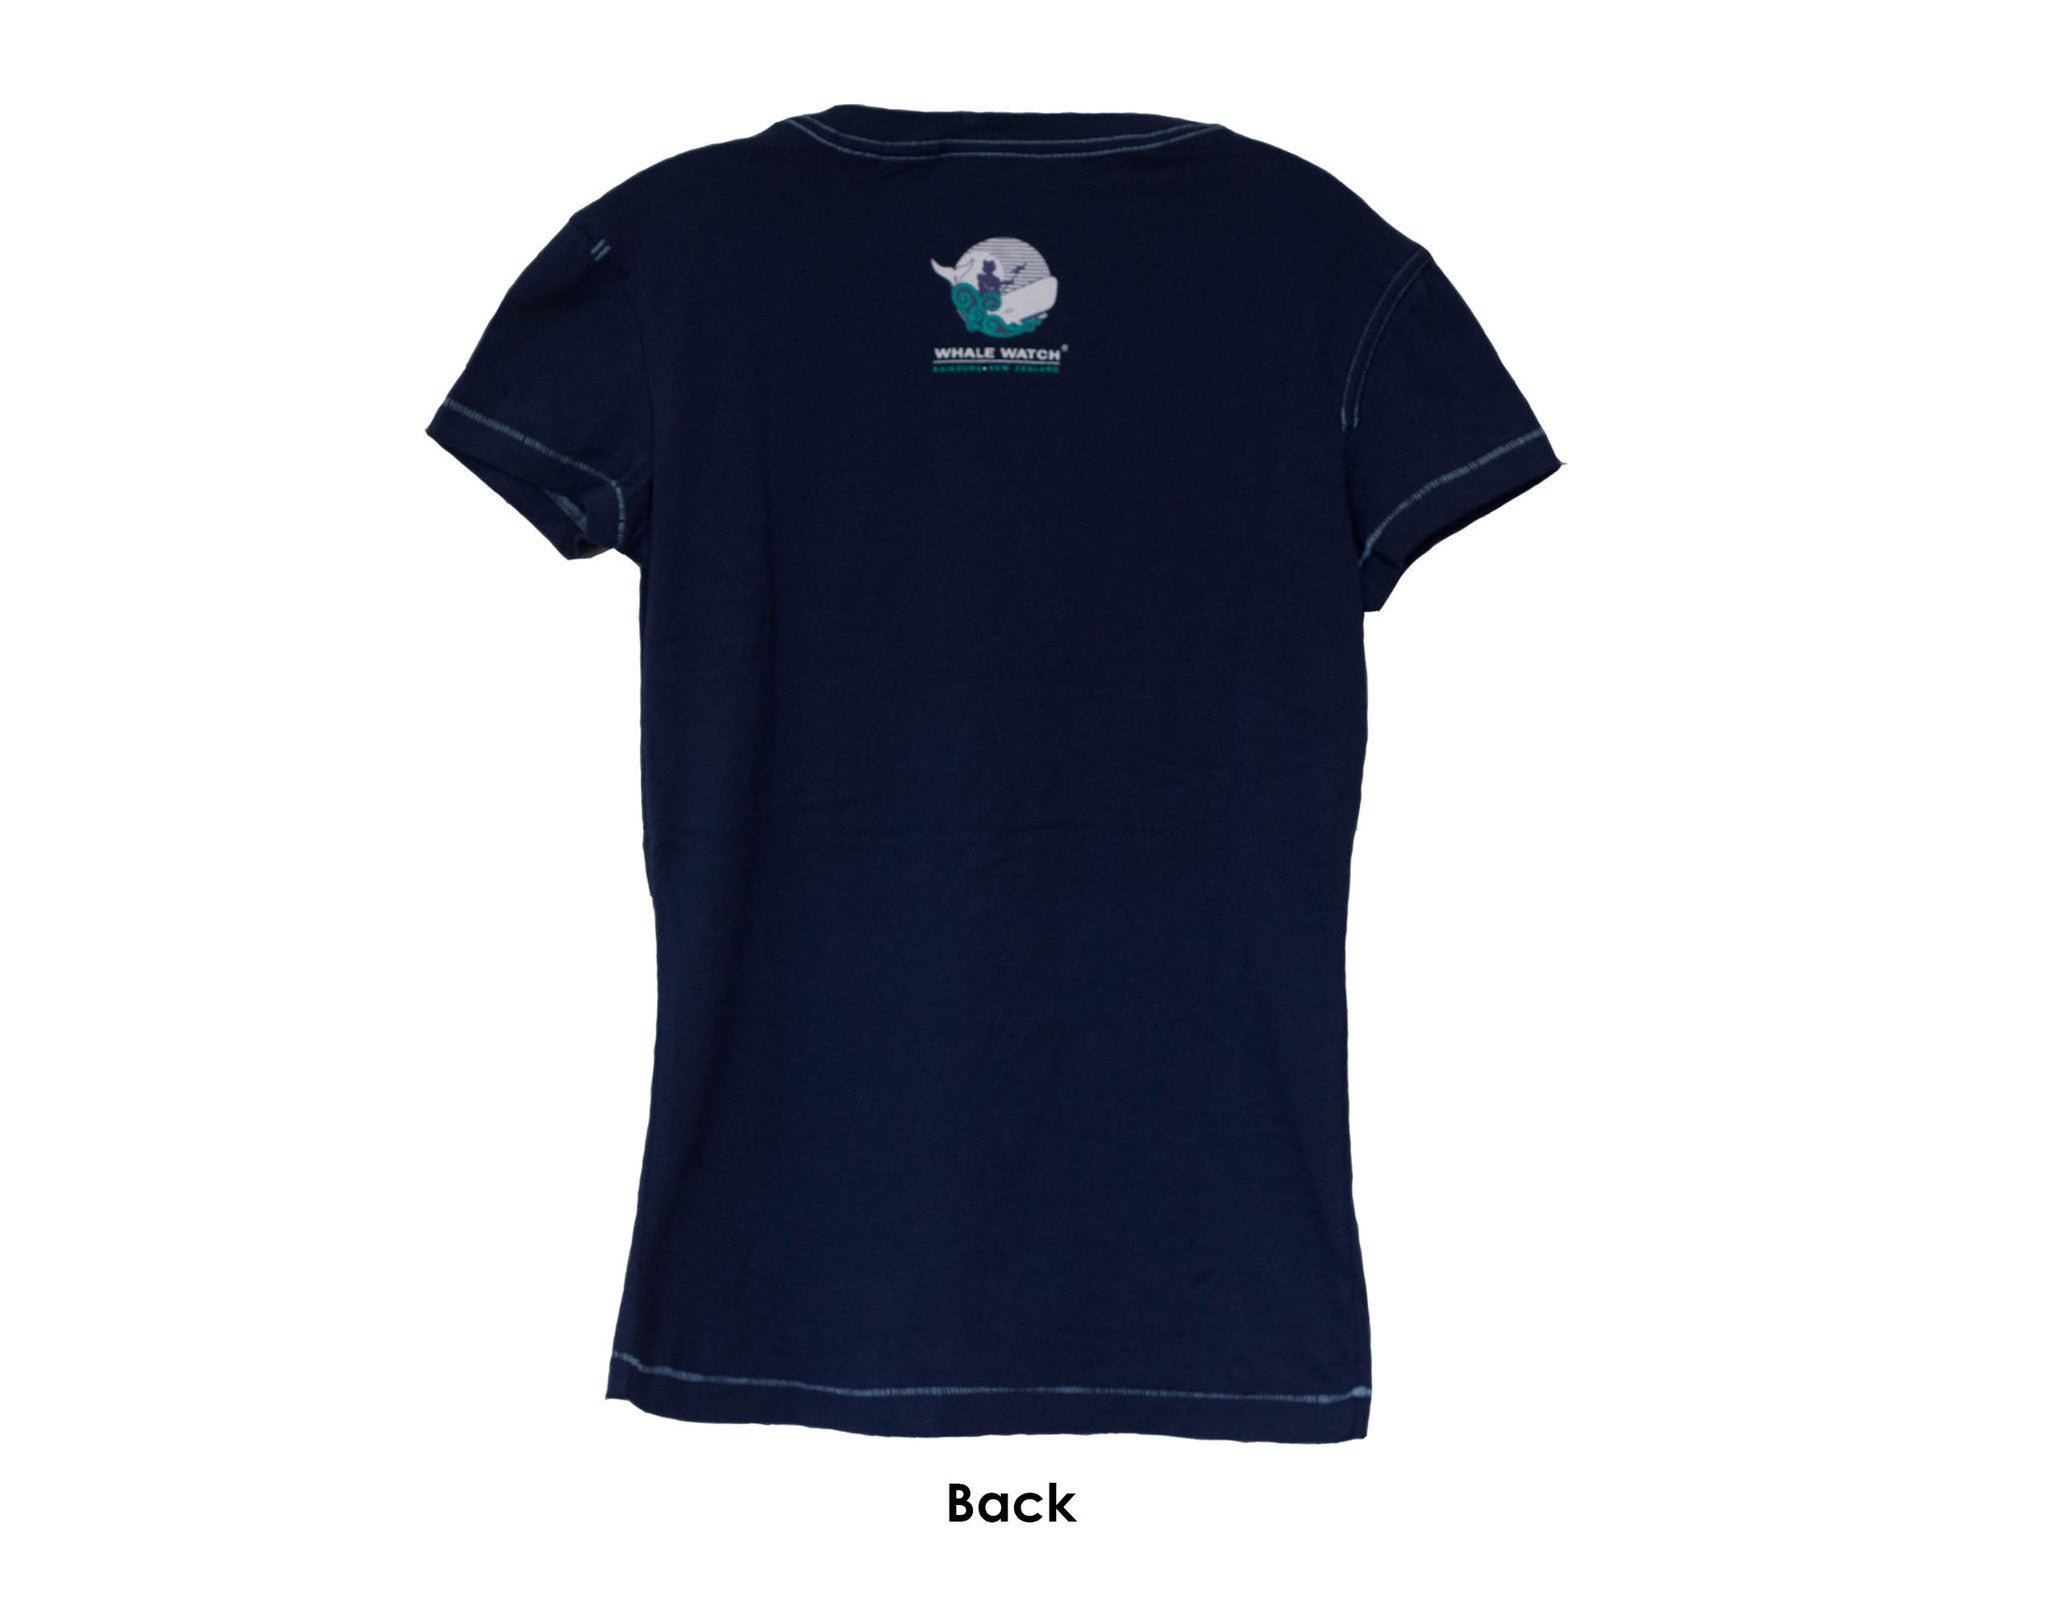 Whale Watch Kaikoura Vintage Womens T-shirt